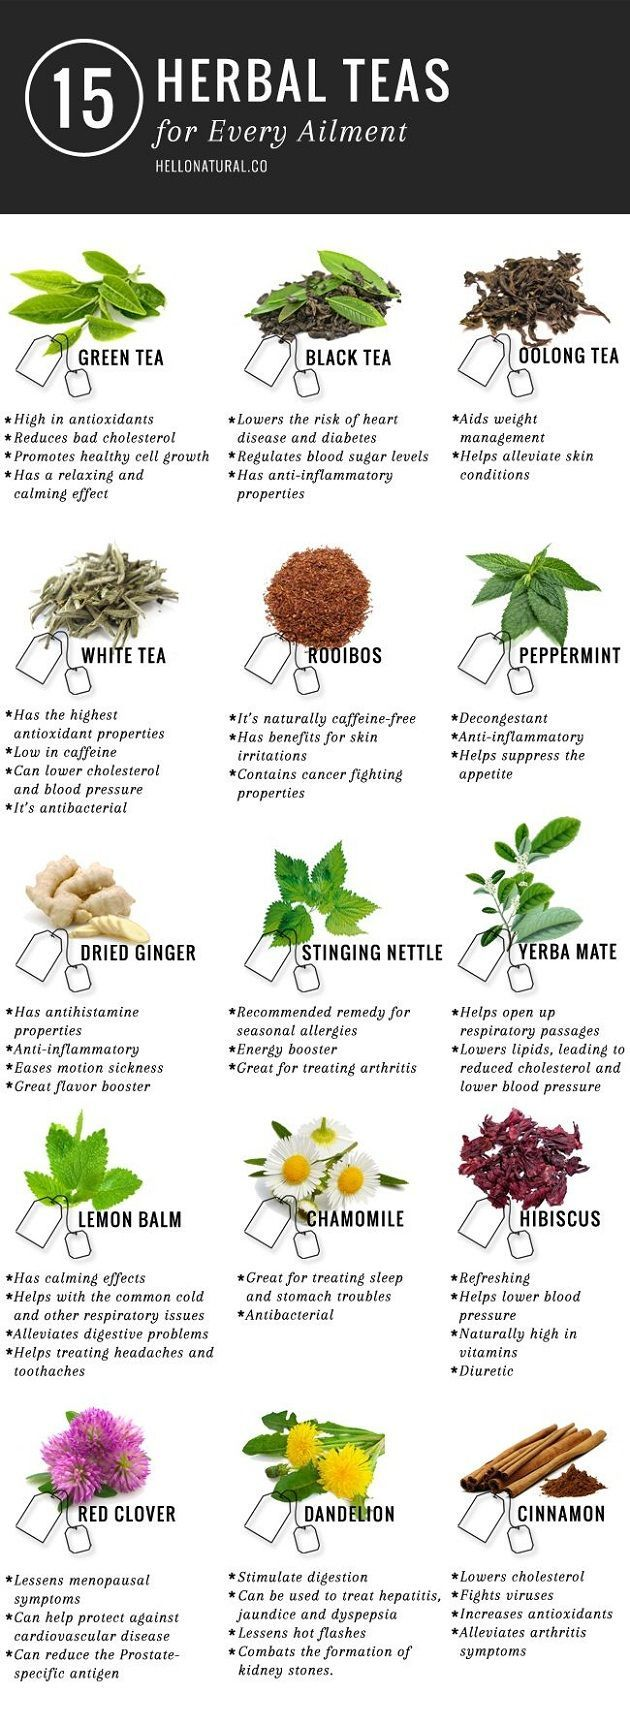 By WTStaff January 19, 2015 15 Herbal Teas for Every Ailment http://www.wakingtimes.com/2015/01/19/15-herbal-teas-every-ailment/ #animals #vitamins #tagforlikes